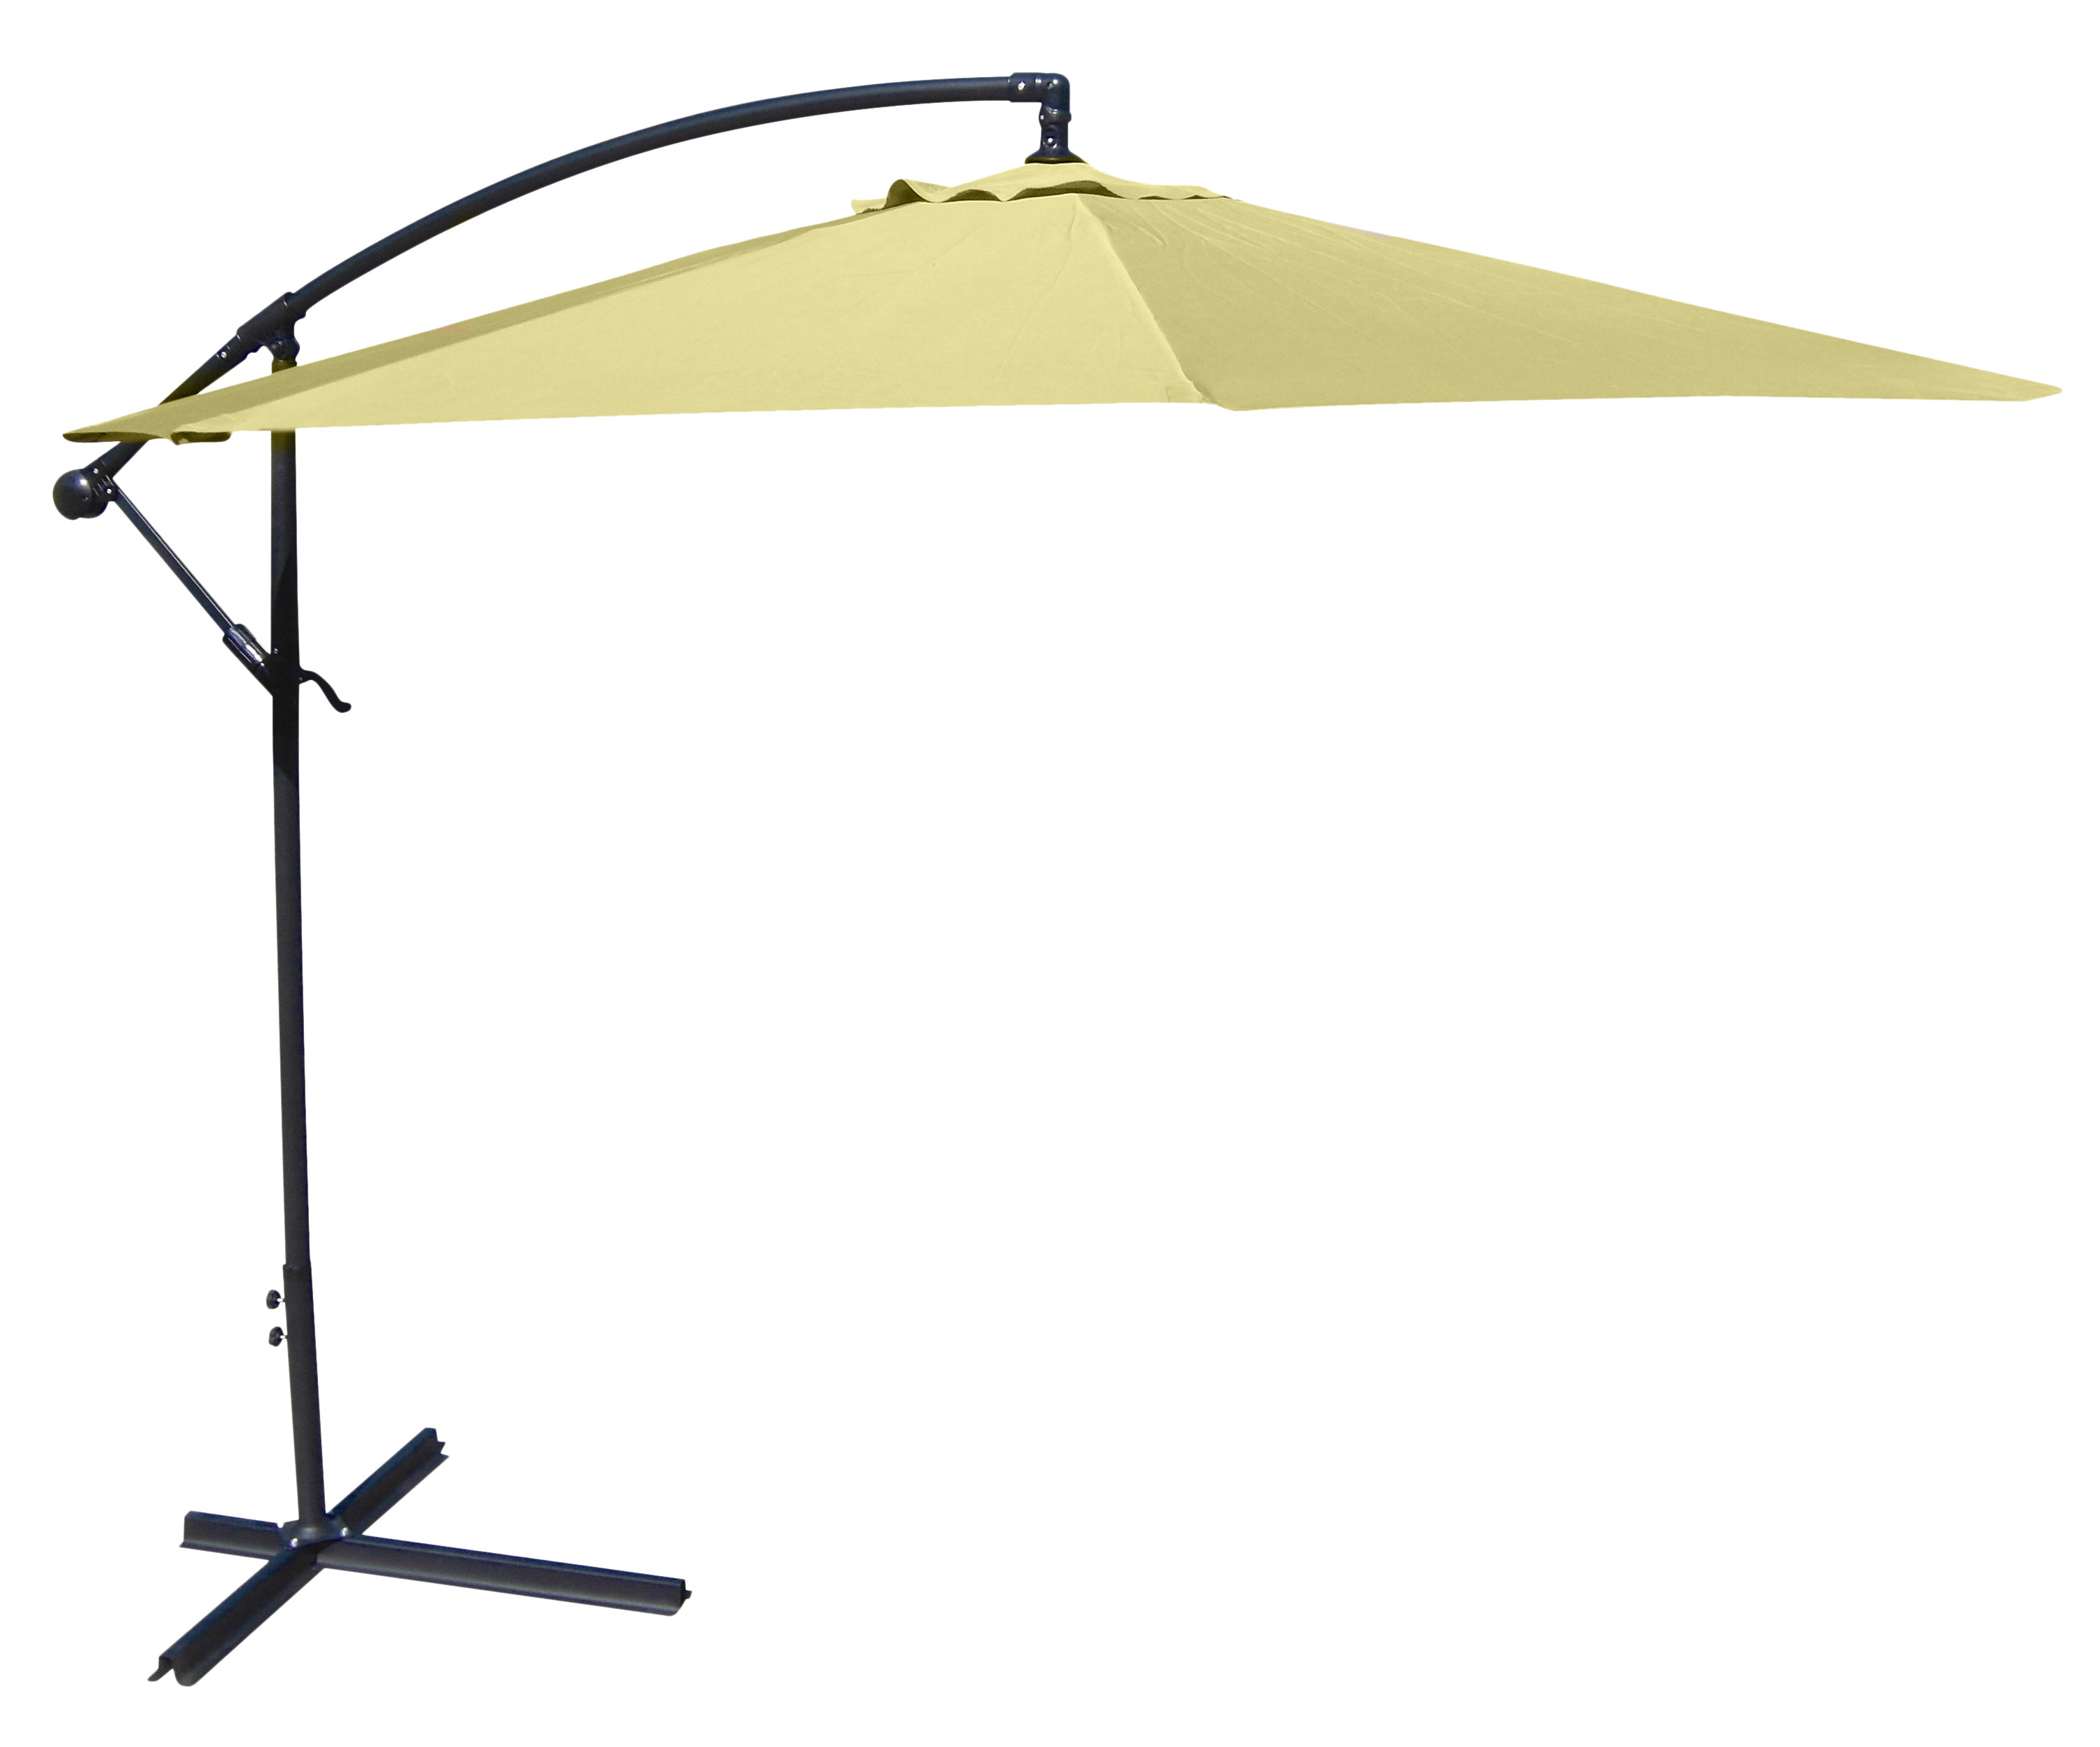 2019 Brayden Studio Trotman 10' Cantilever Umbrella Regarding Trotman Cantilever Umbrellas (View 4 of 20)